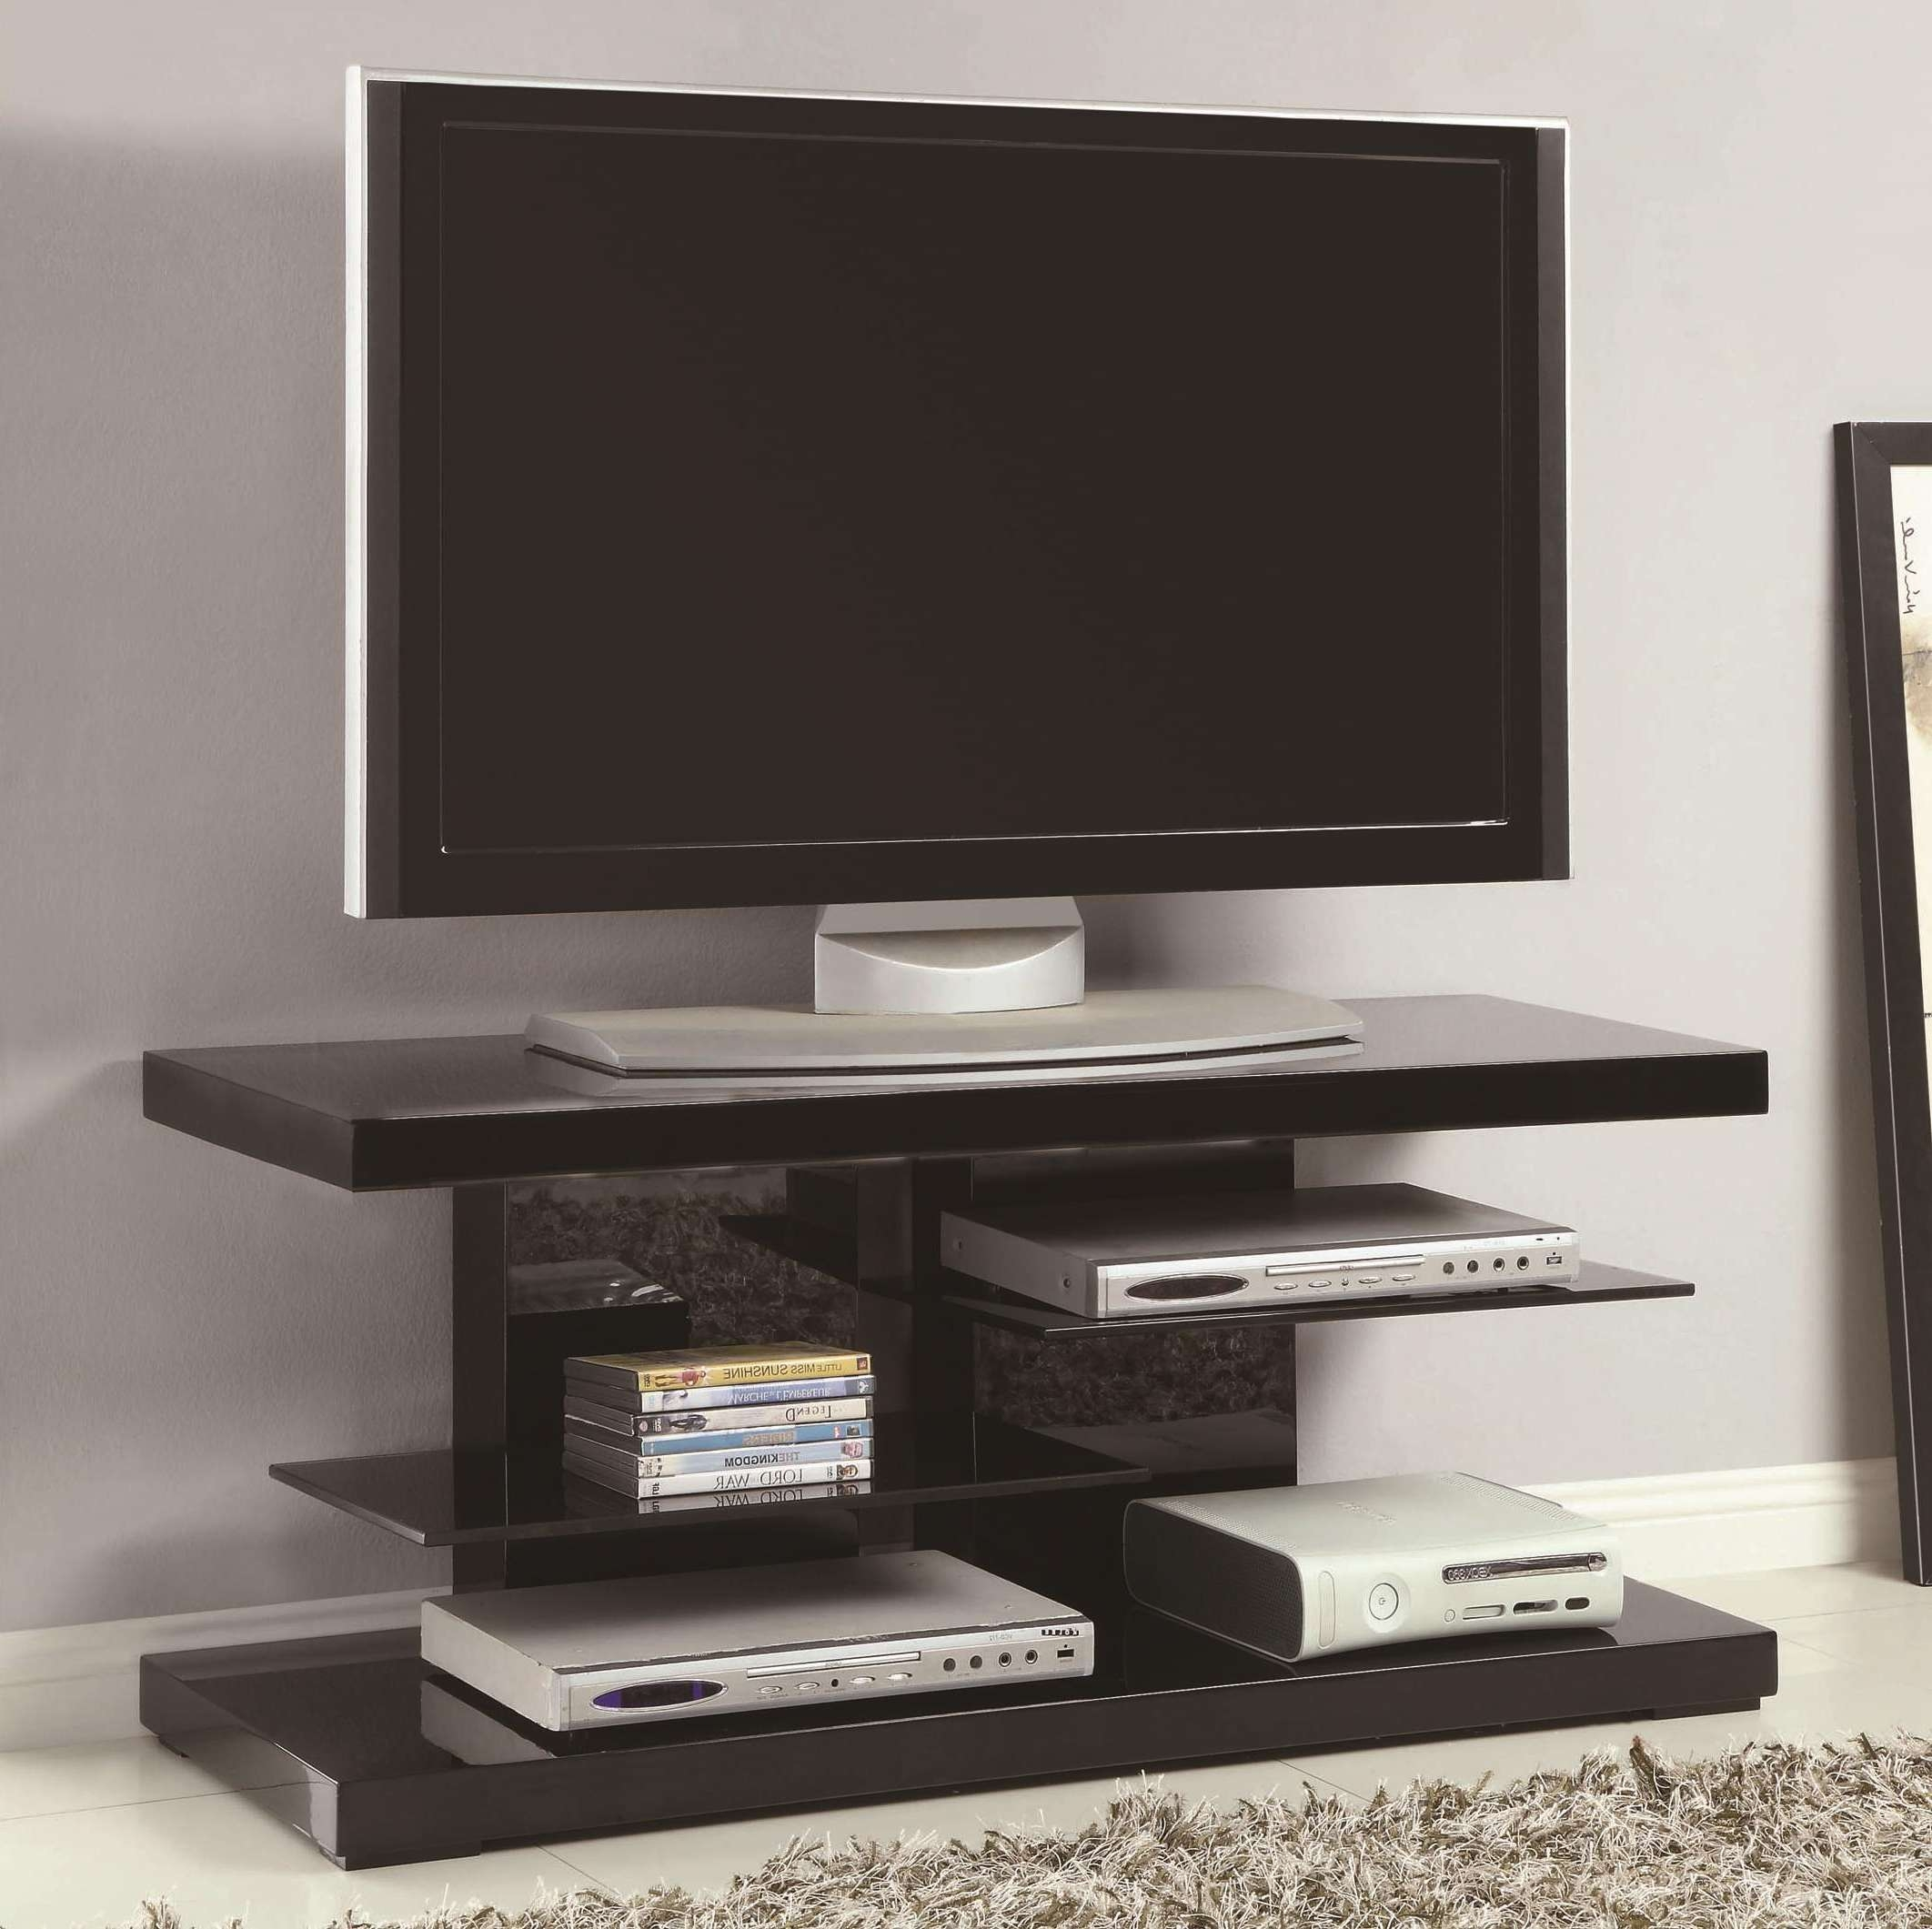 Best Contemporary Tv Console For Flat Screens | All Contemporary Regarding Contemporary Tv Stands For Flat Screens (View 2 of 15)